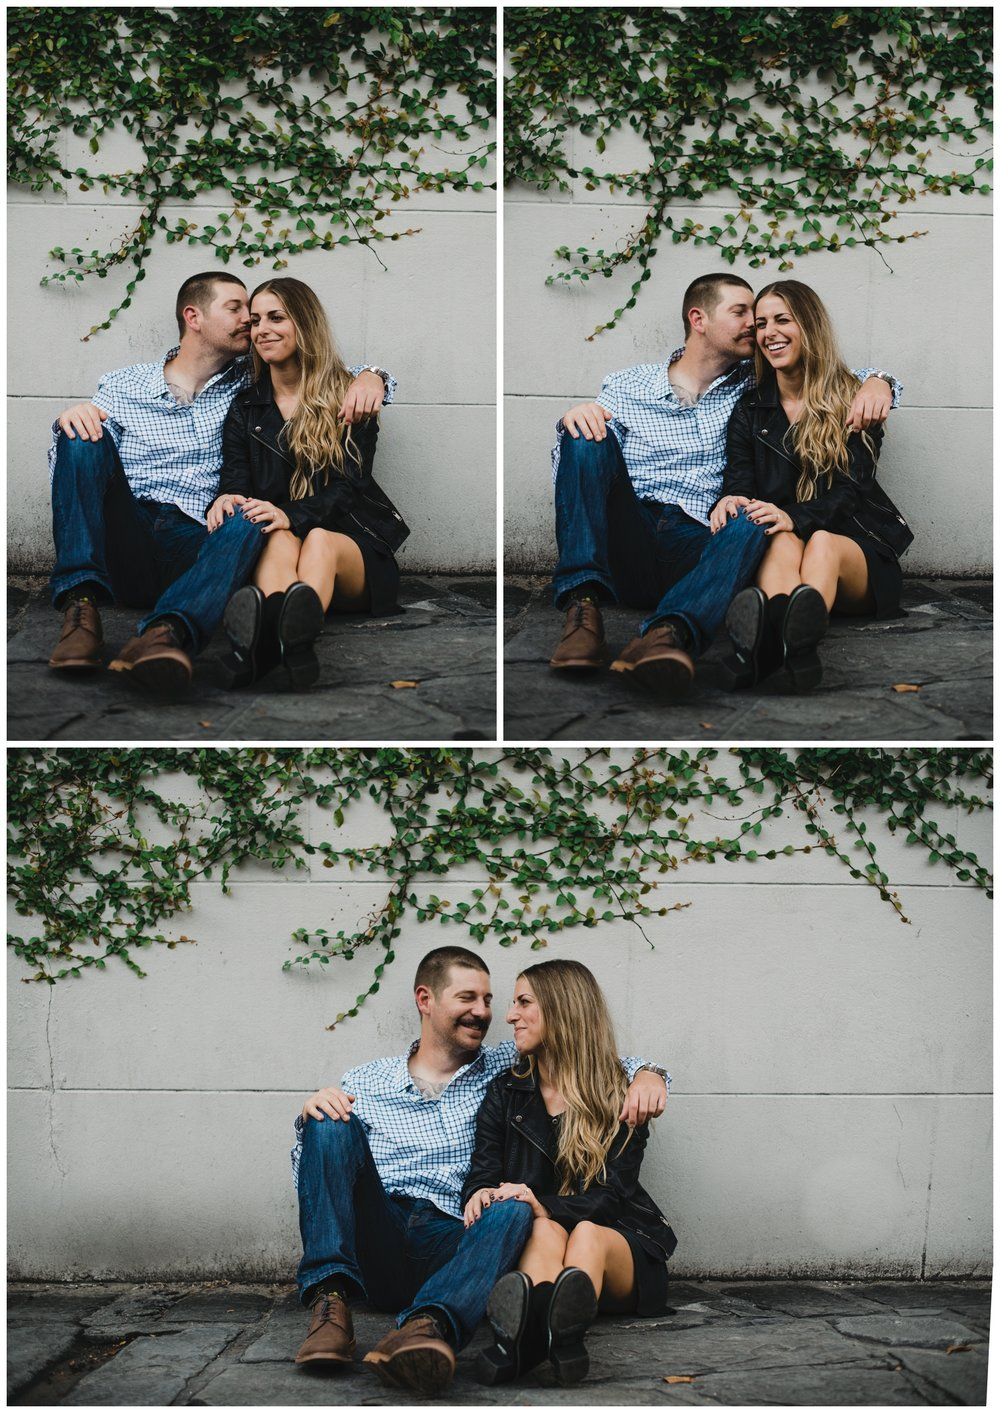 New-Orleans-Engagement-photos- French-Quarter-Proposal-New-Orleans-Photographer- kallistia-photography_0013.jpg